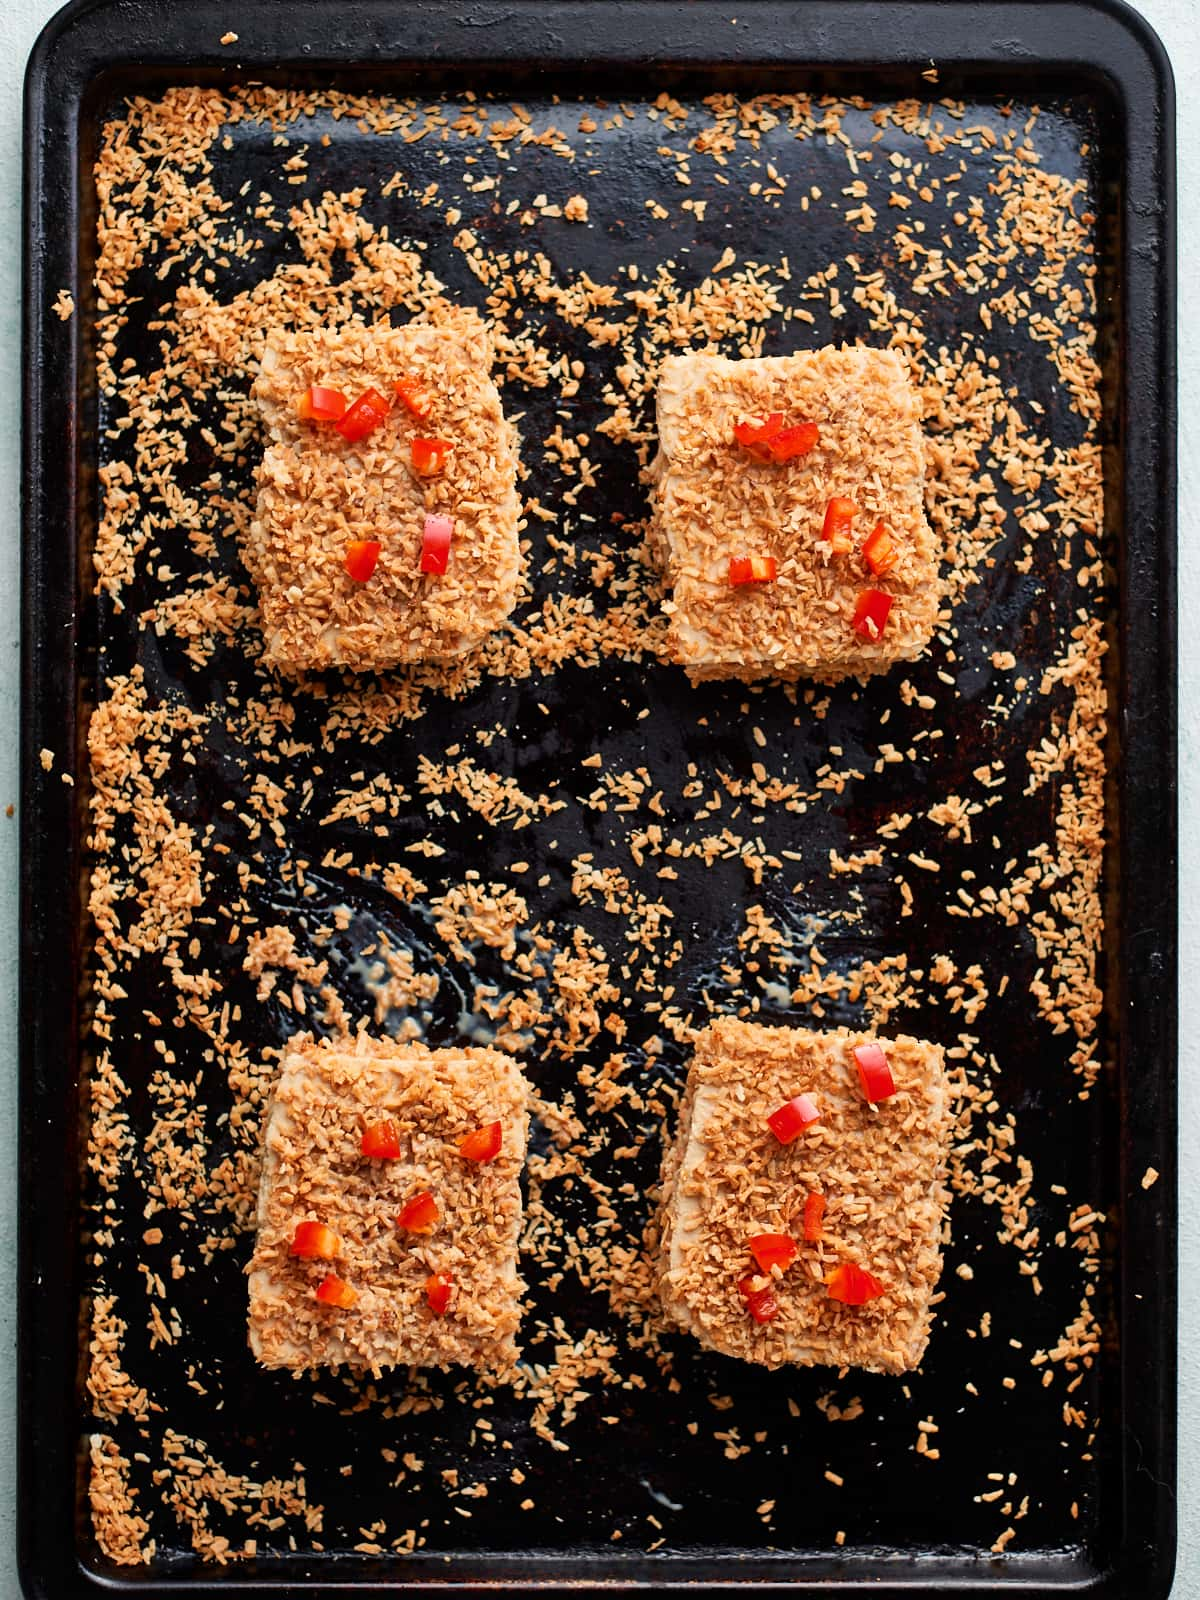 Coconut tofu on baking sheet ready to go in the oven